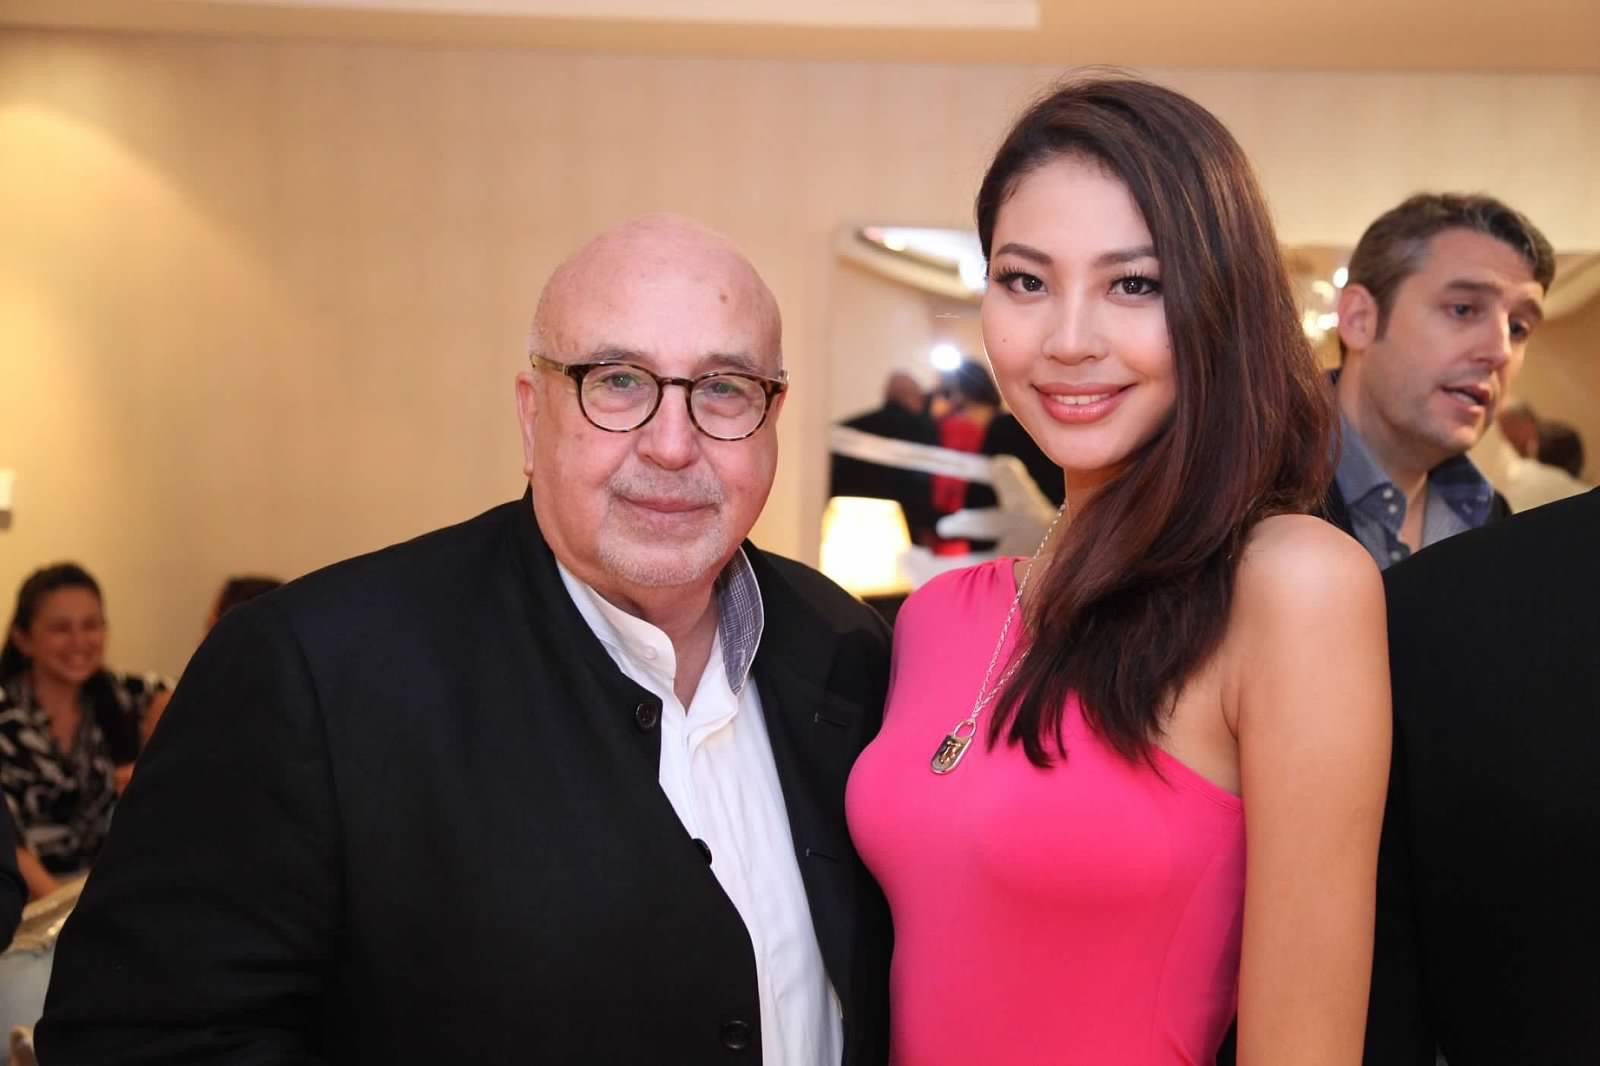 With former Miss China Luo Zilin